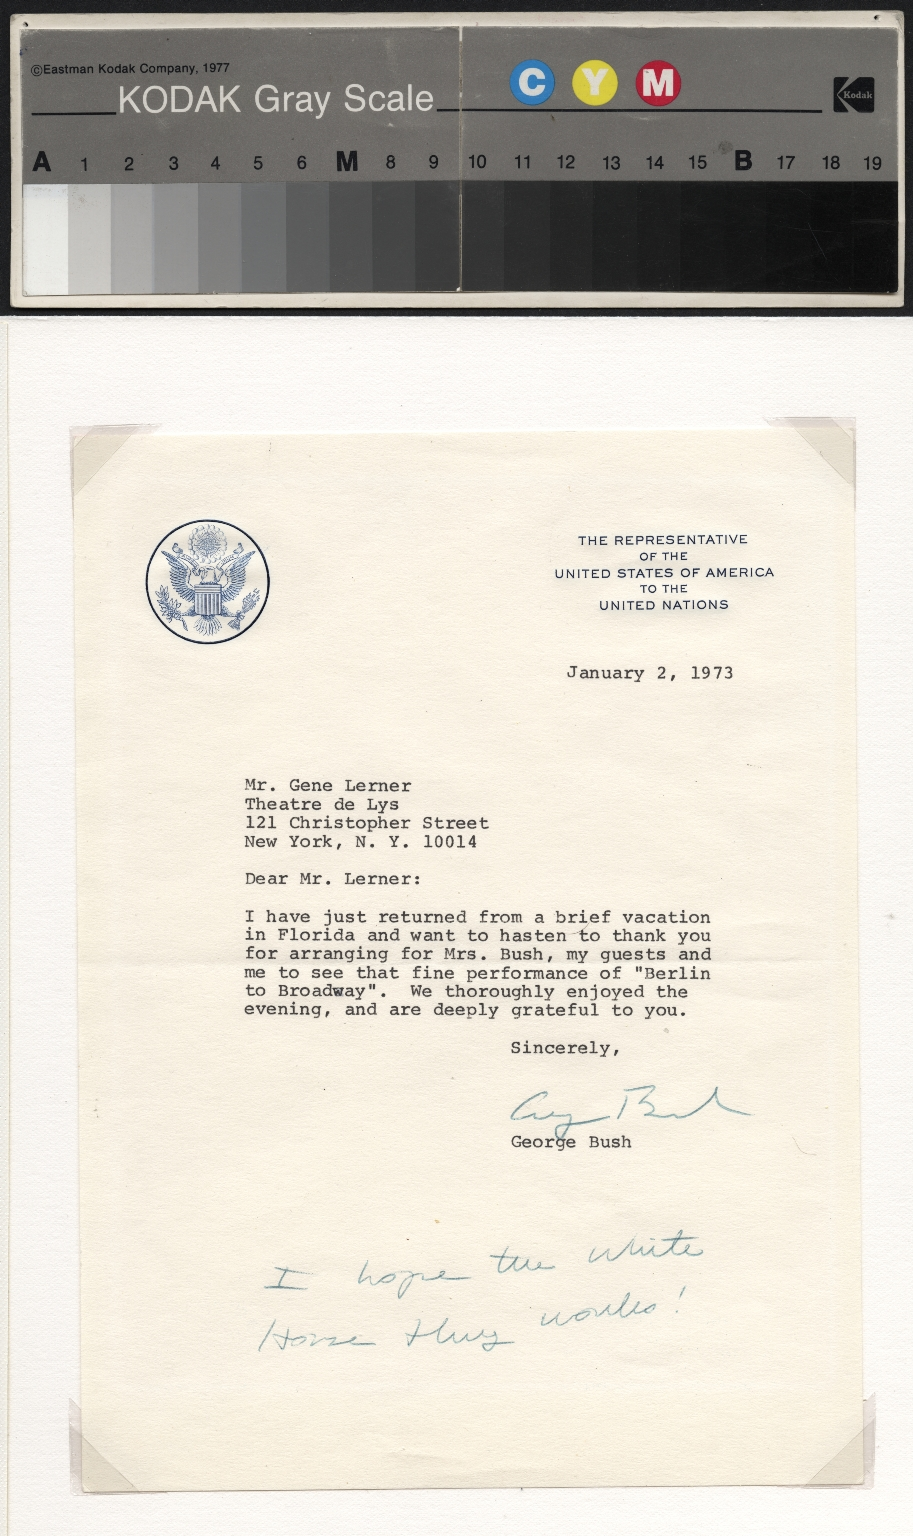 George Bush letter to Gene Lerner